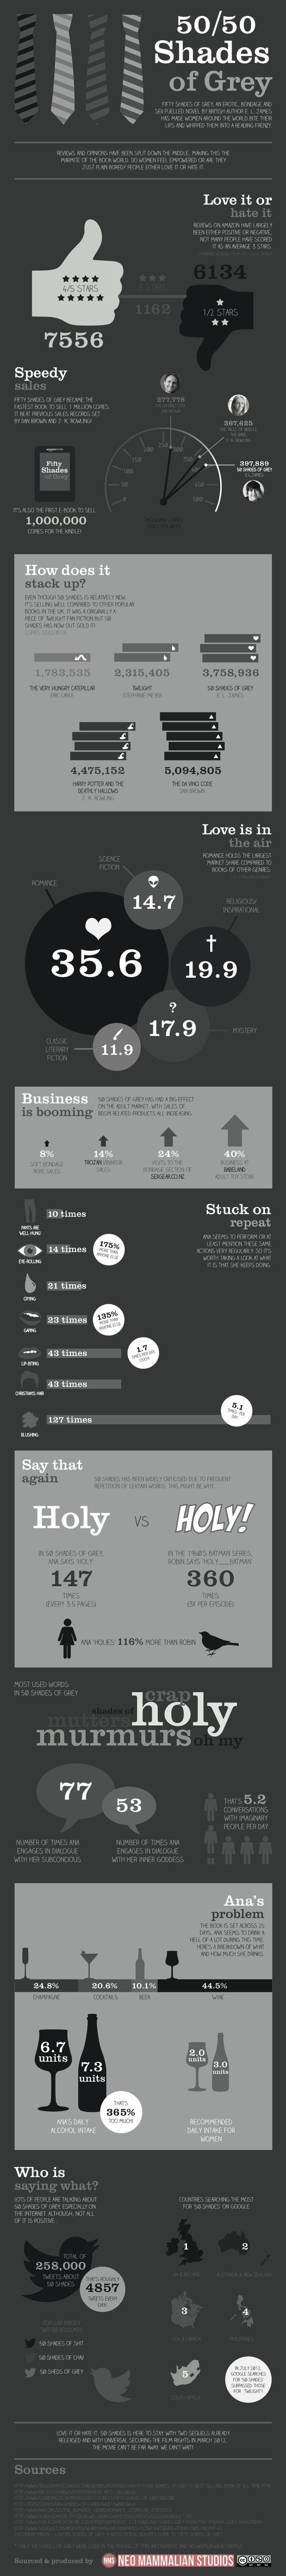 50/50 Shades of Grey [INFOGRAPHIC]